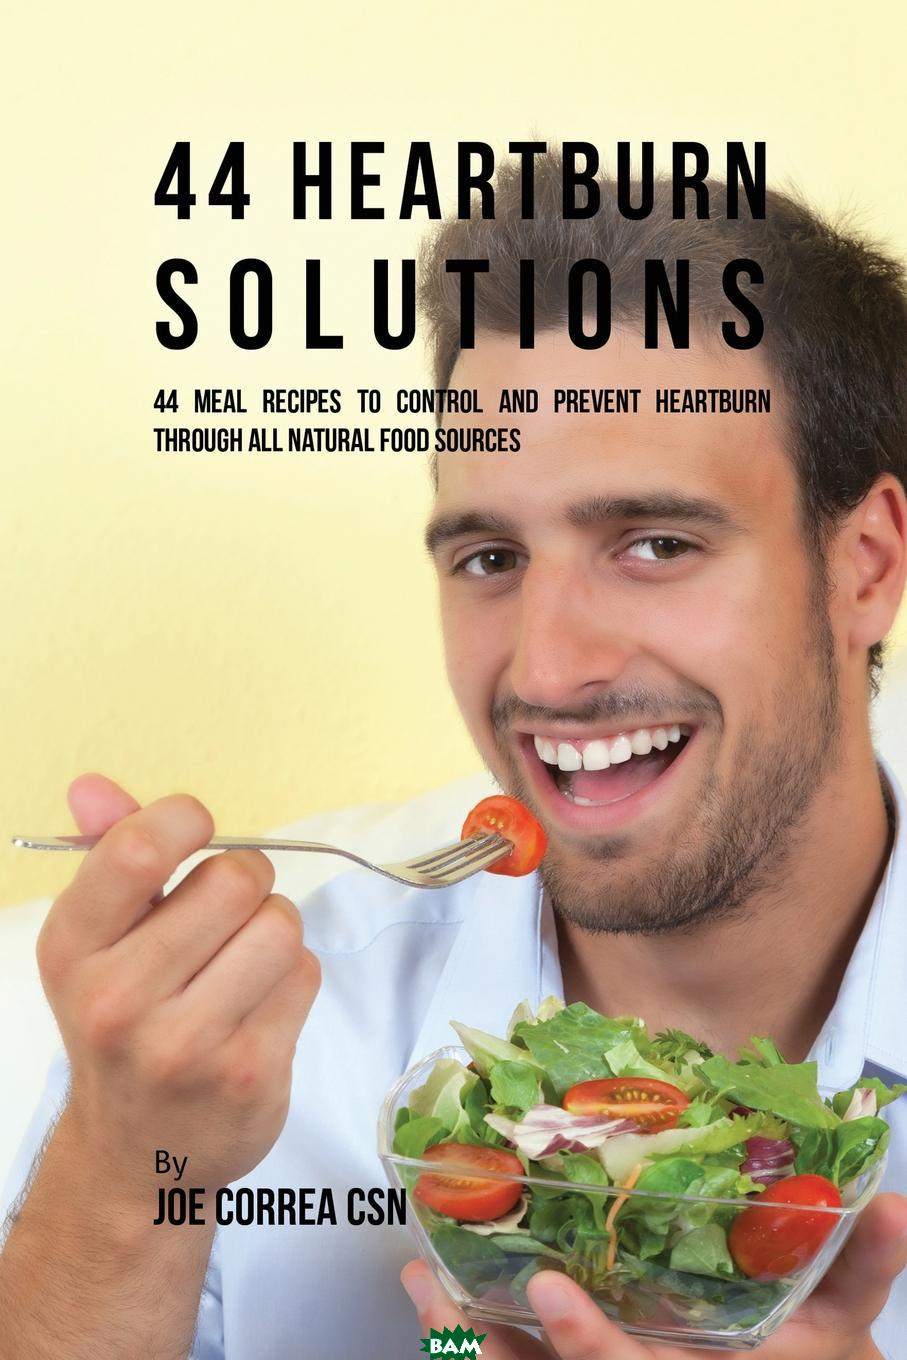 44 Heartburn Solutions. 44 Meal Recipes to Control and Prevent Heartburn through All Natural Food Sources